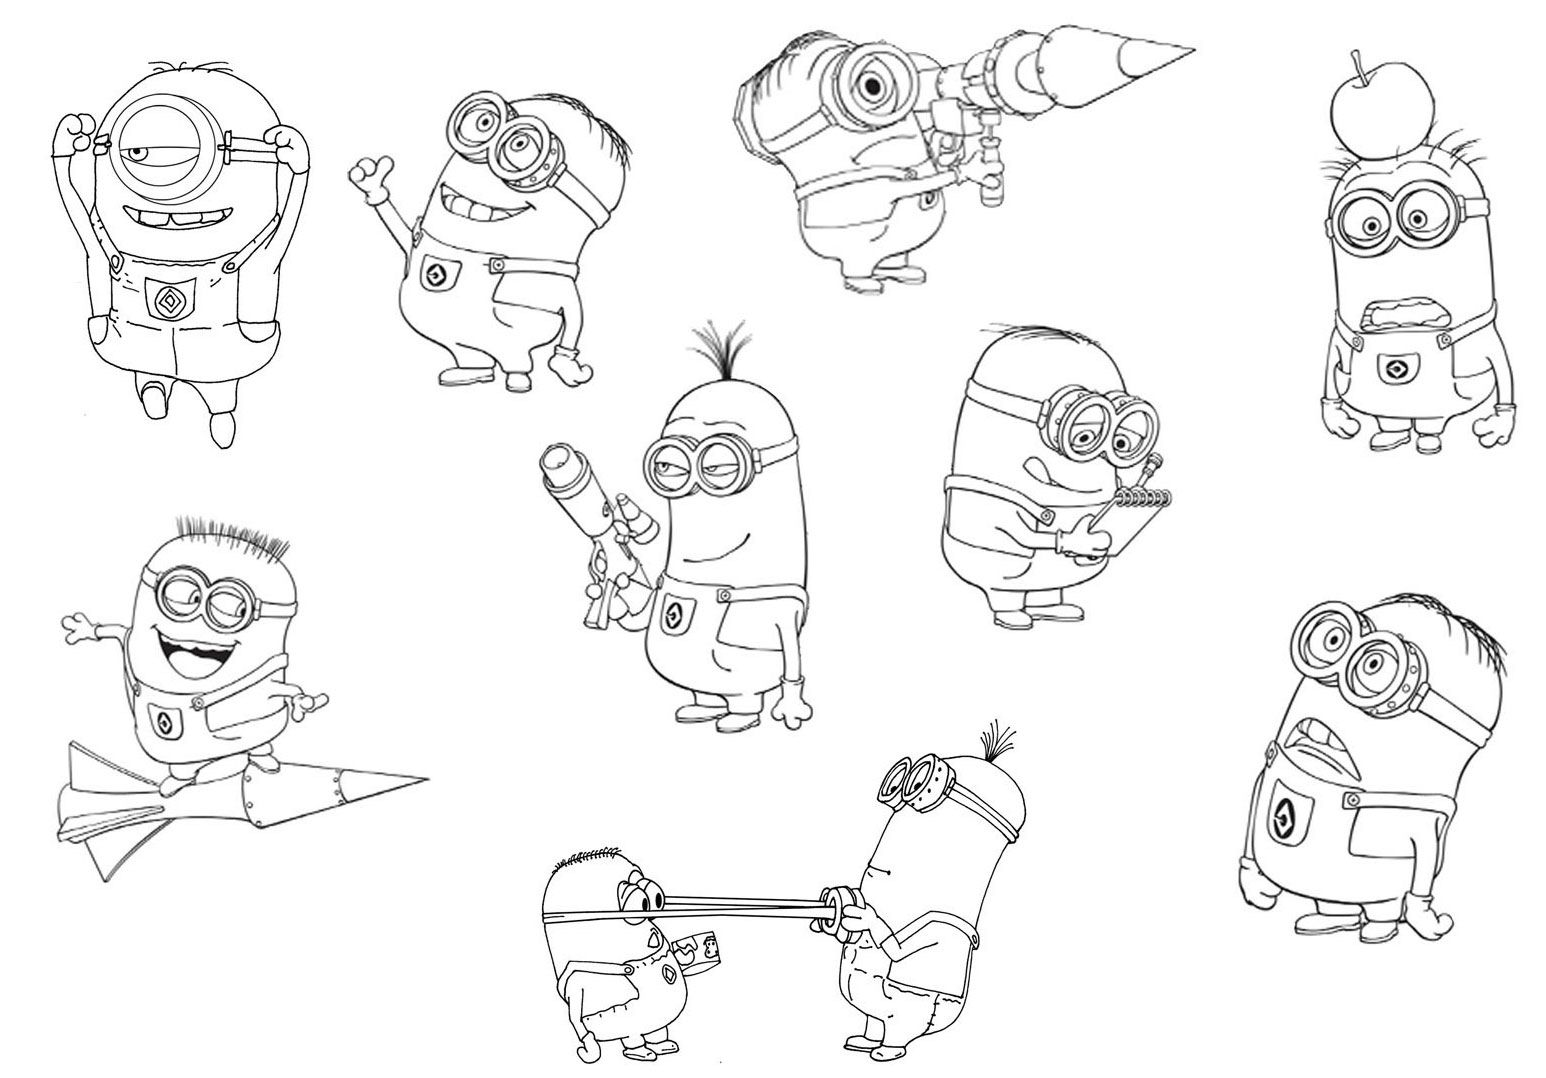 Kids Under 7: Despicable me Coloring pages | bastelkram | Pinterest ...